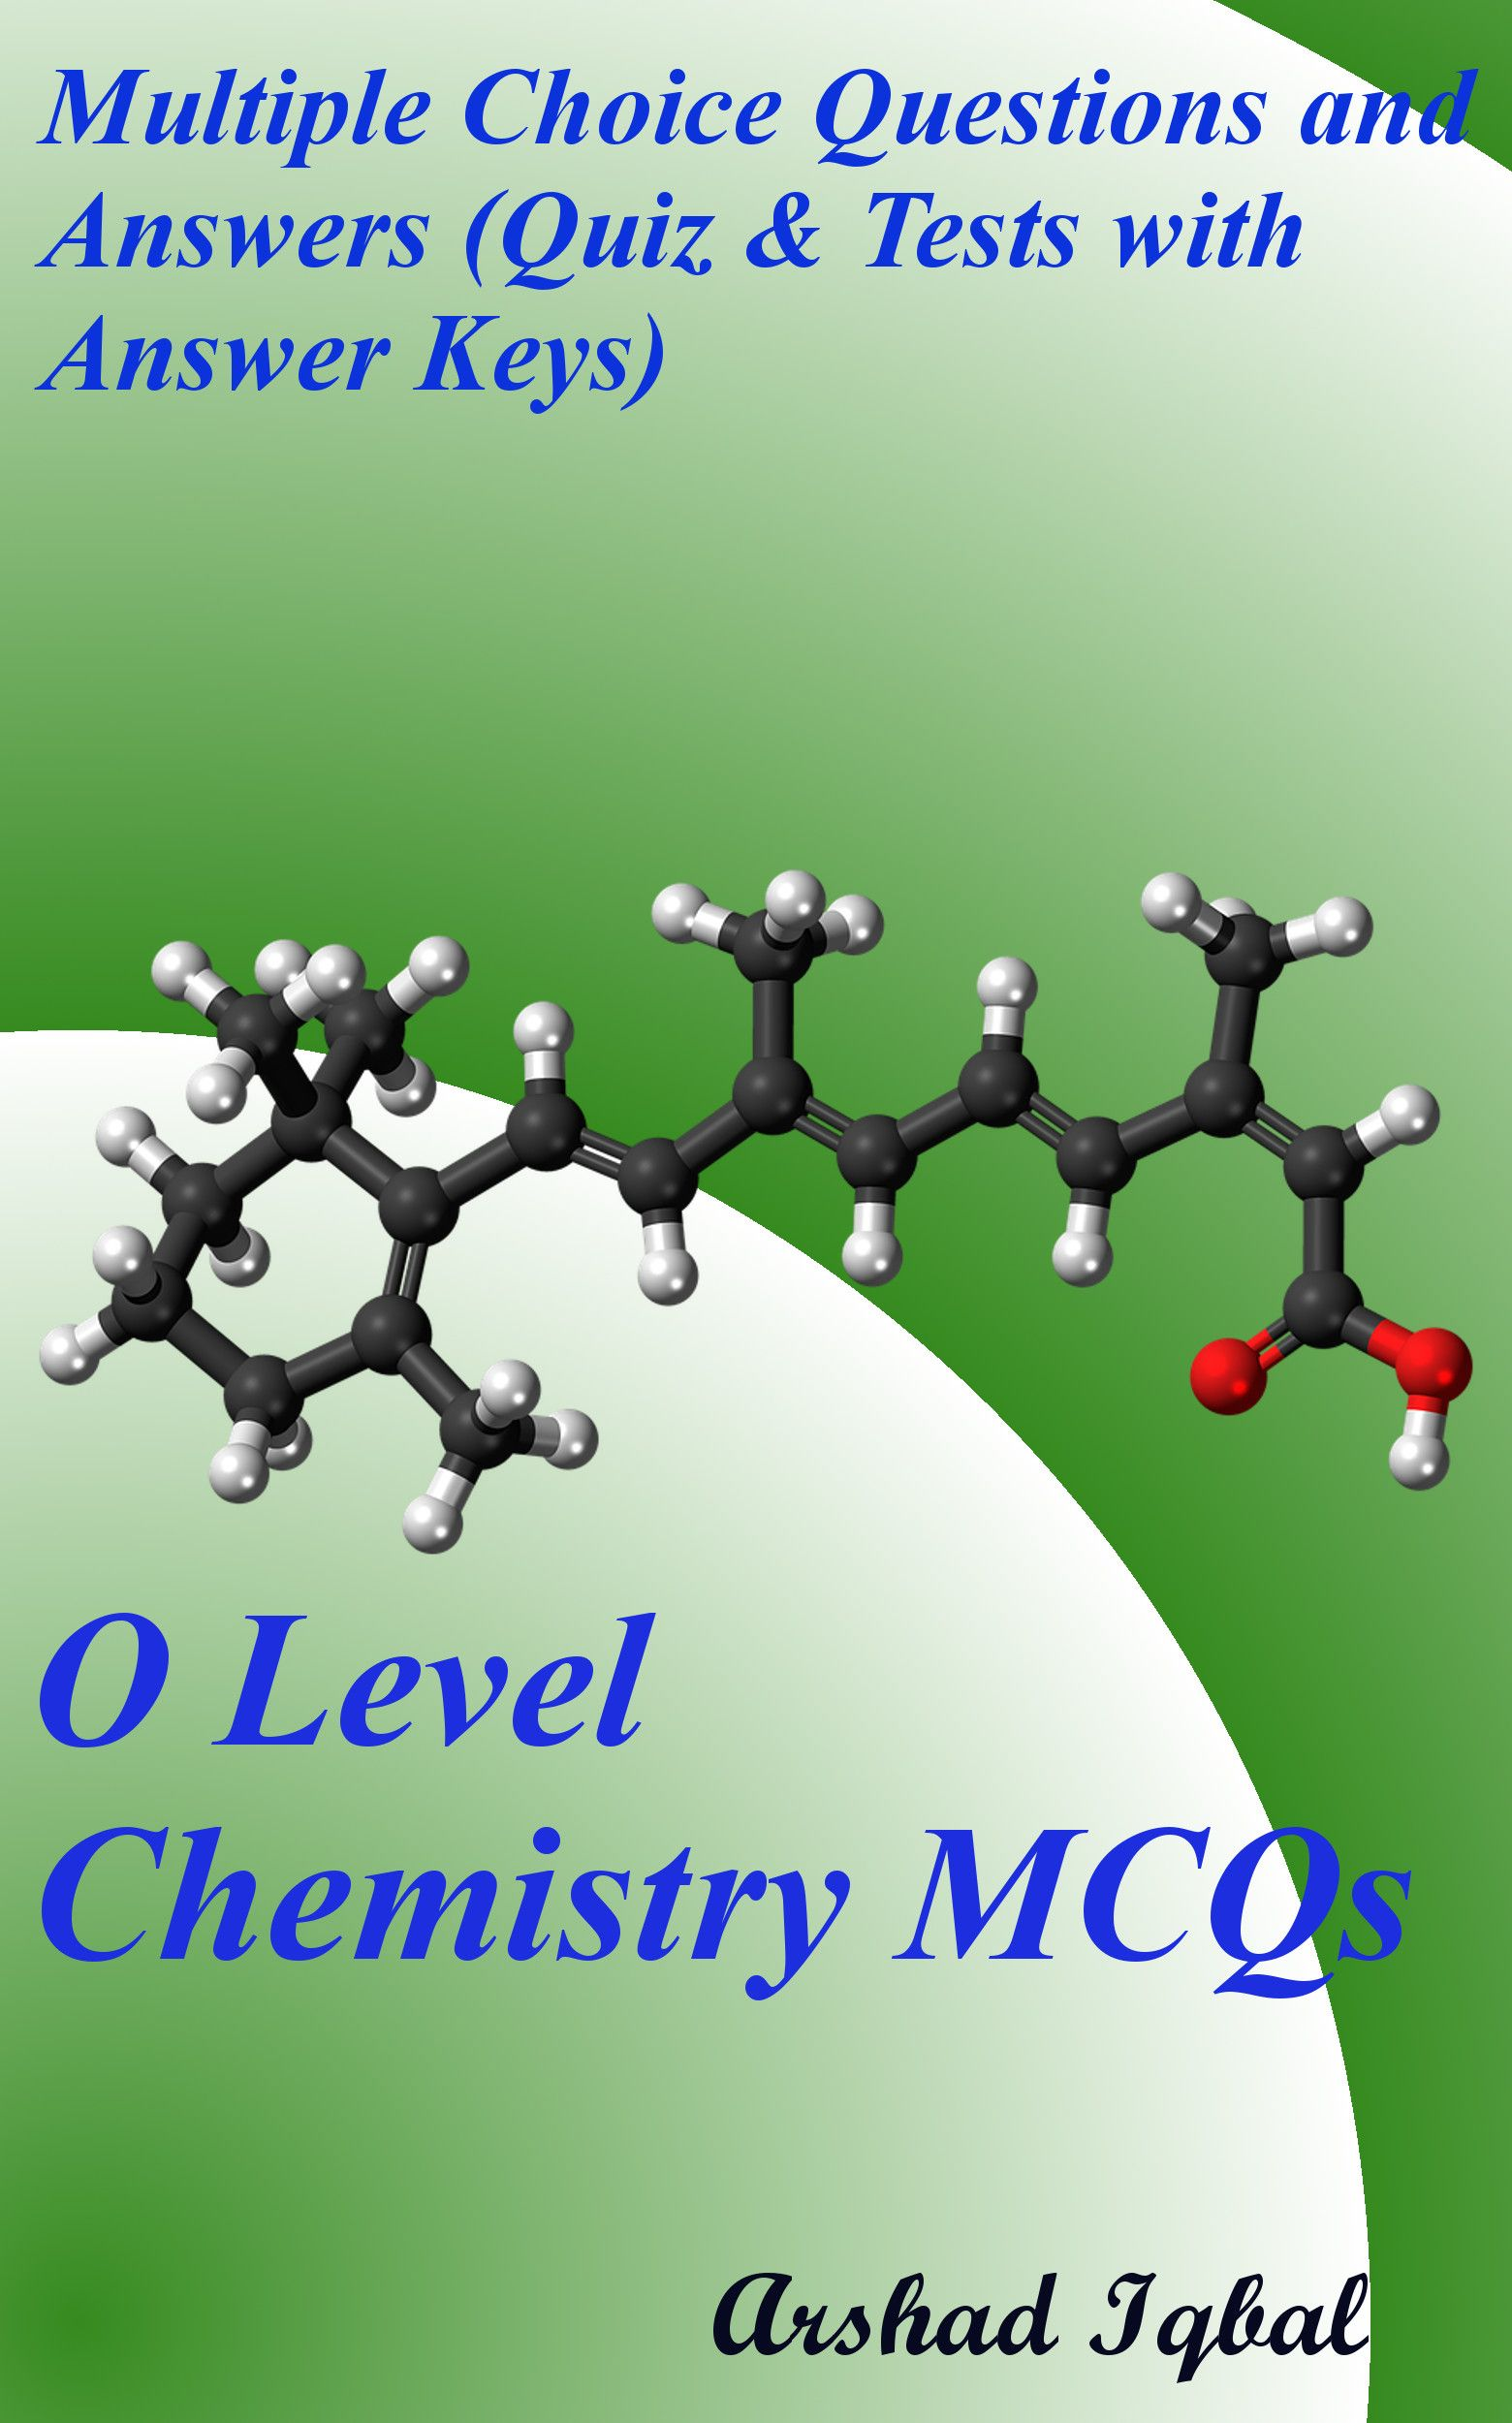 O Level Chemistry Mcqs Has 900 Multiple Choice Questions